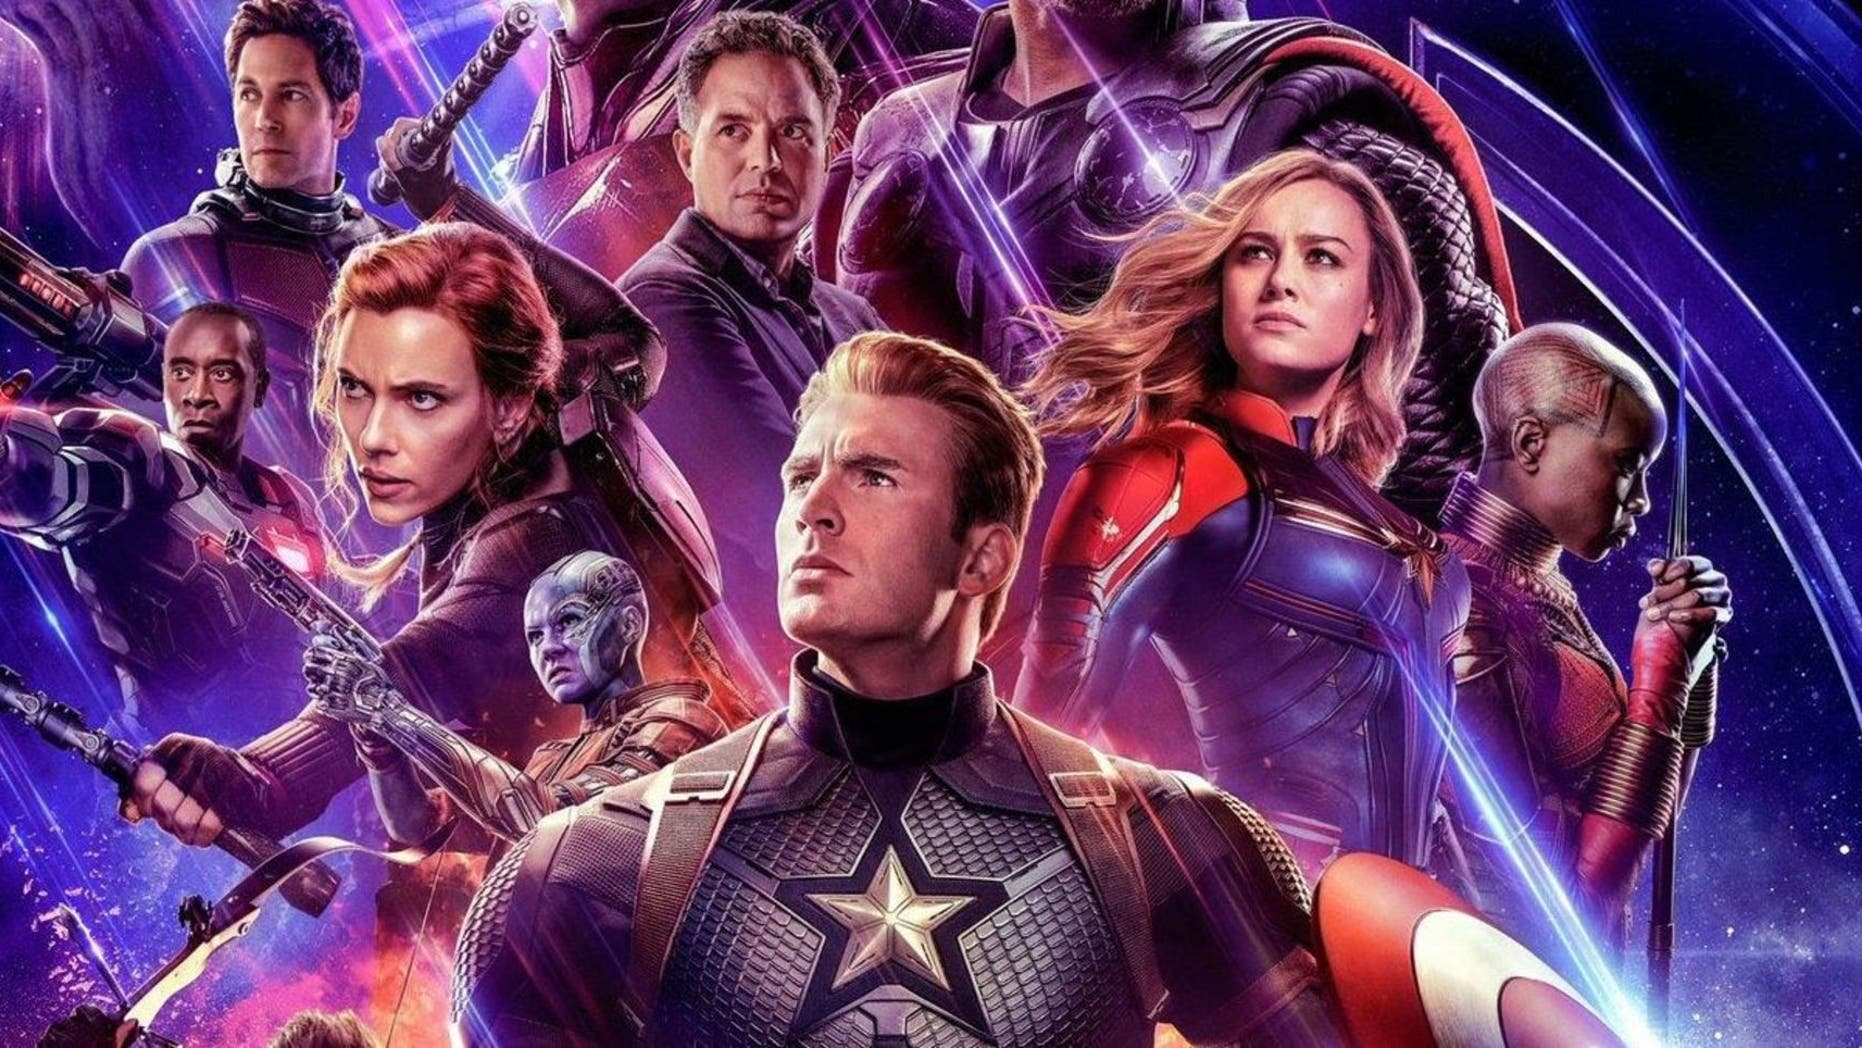 Westlake Legal Group avengers-poster Leaked clips of 'Avengers: Endgame' circulate on social media Kathleen Joyce fox-news/entertainment/movies fox-news/entertainment/celebrity-news fox news fnc/entertainment fnc article 3cf83b0e-d150-5572-bd6d-d534edf7a9aa